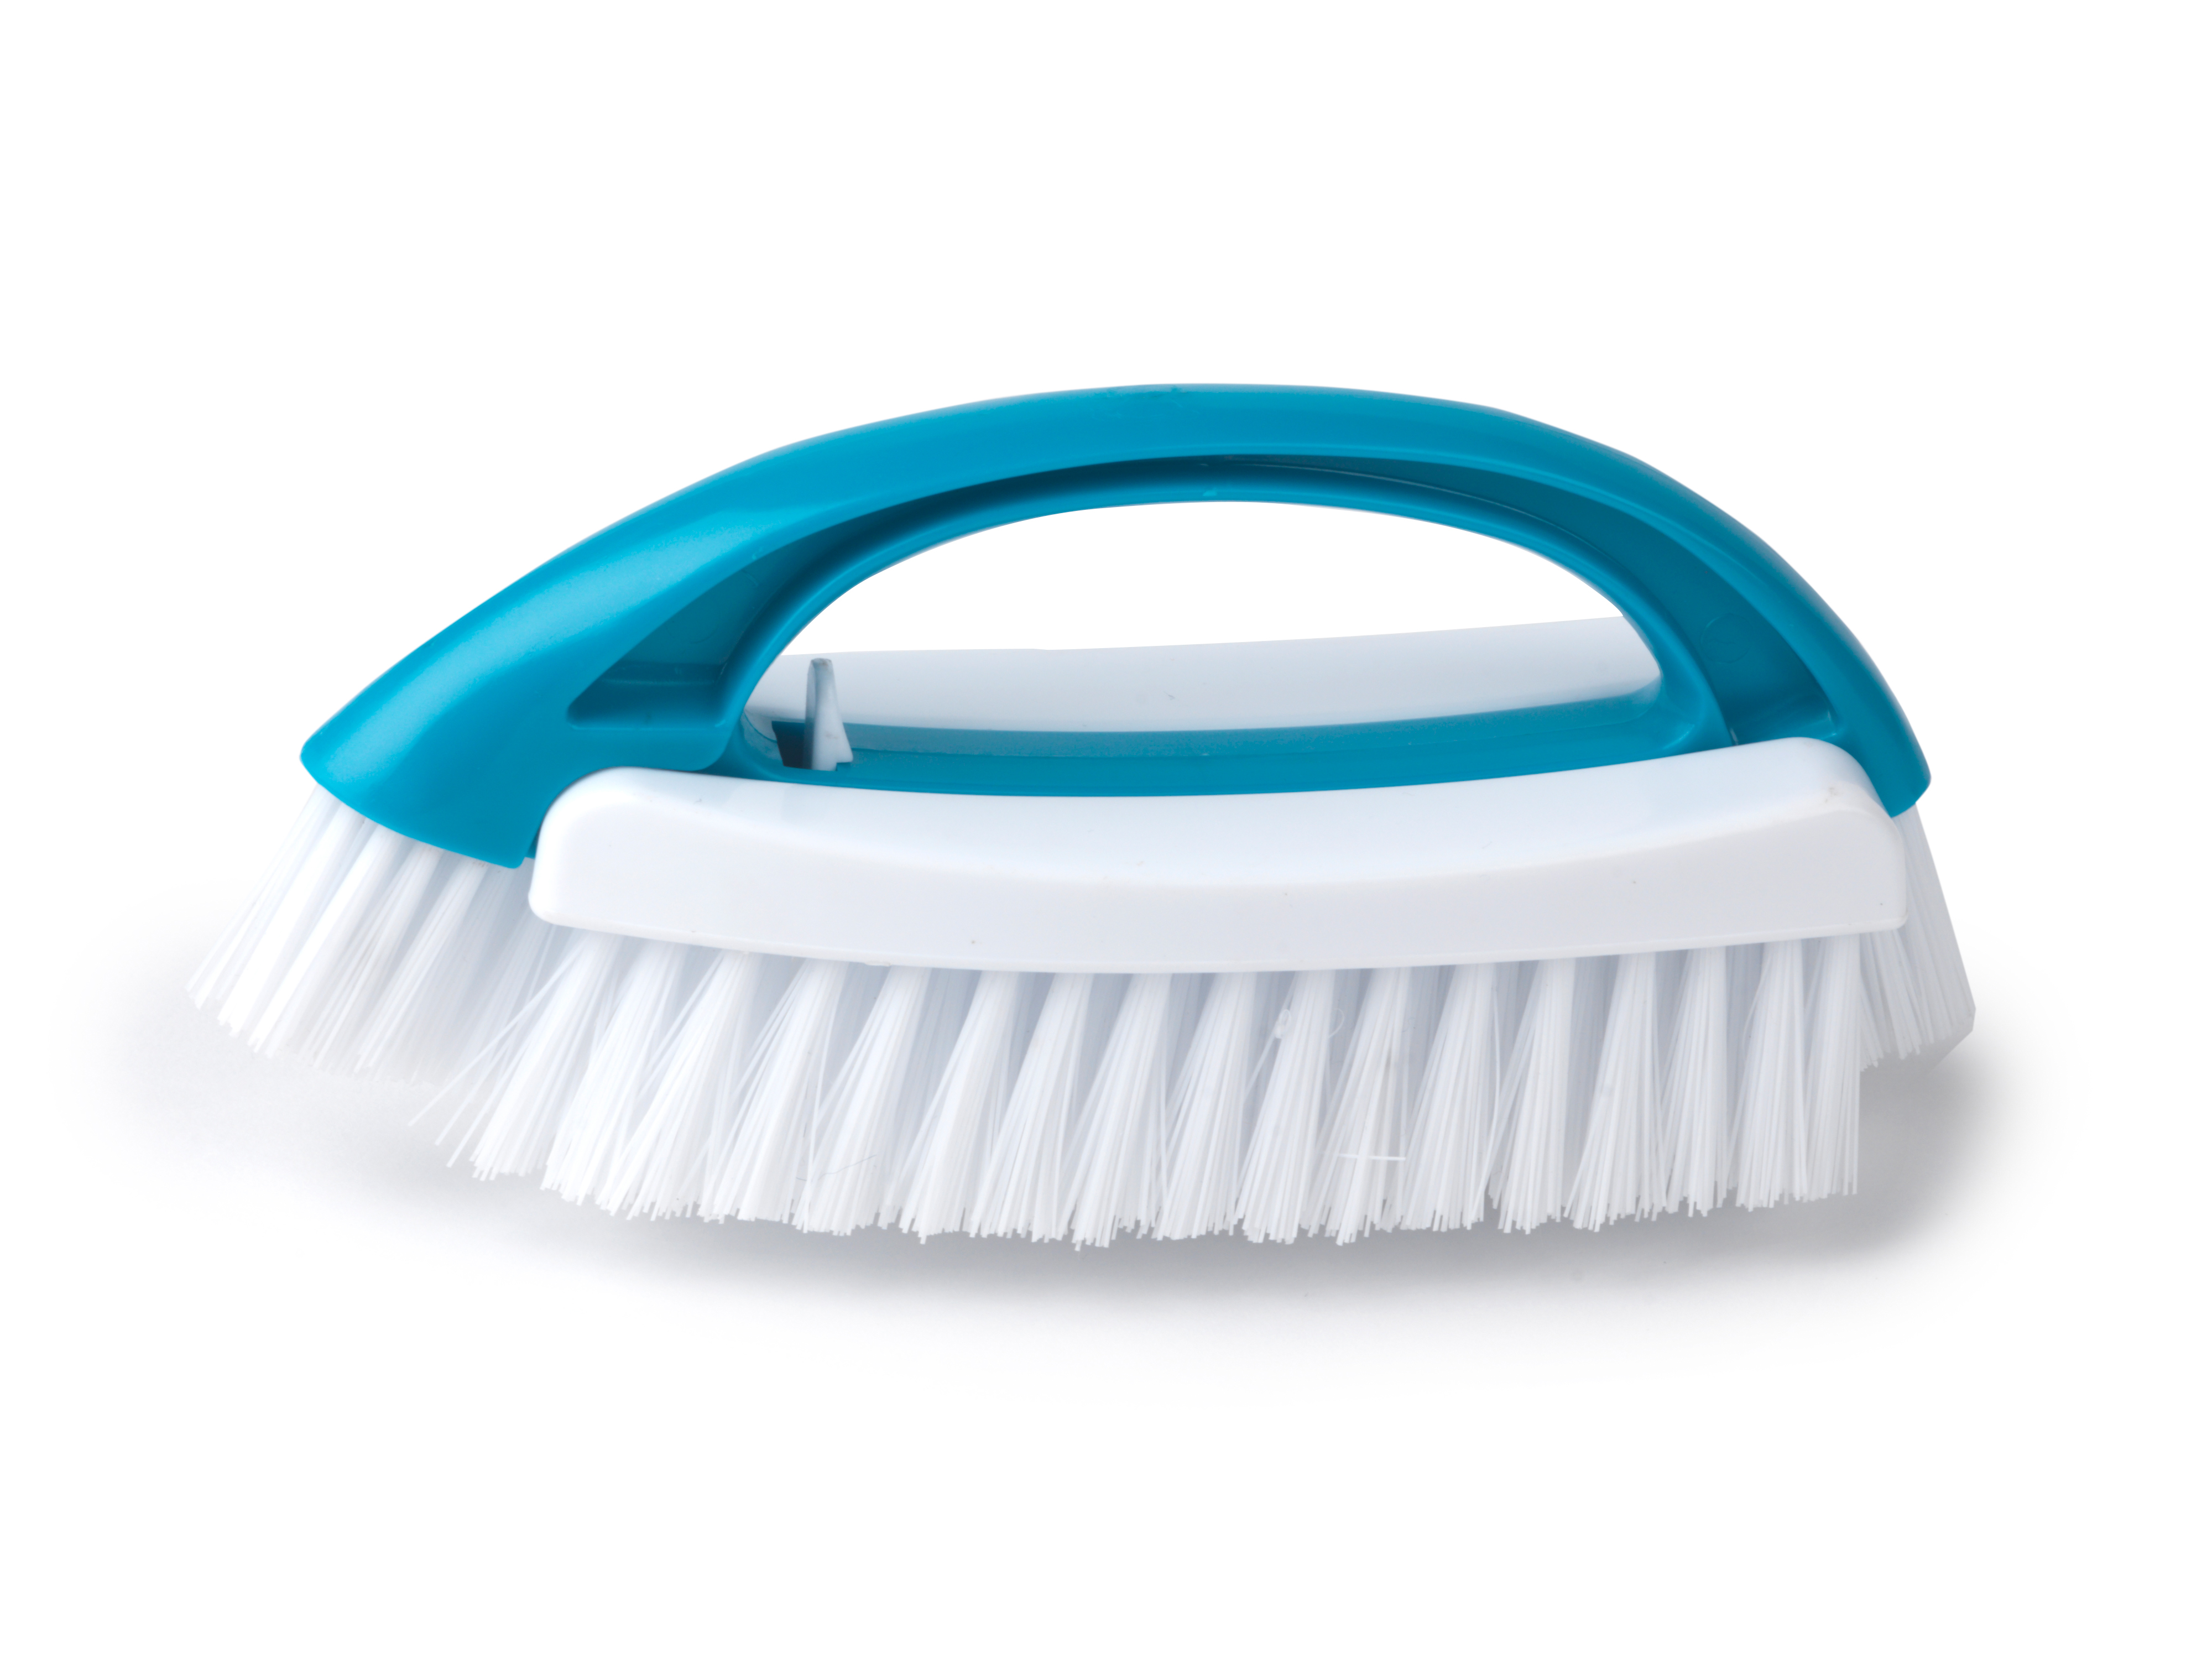 Turquoise Bathroom Beldray Turquoise 2 In 1 Cleaning Brush Beldray